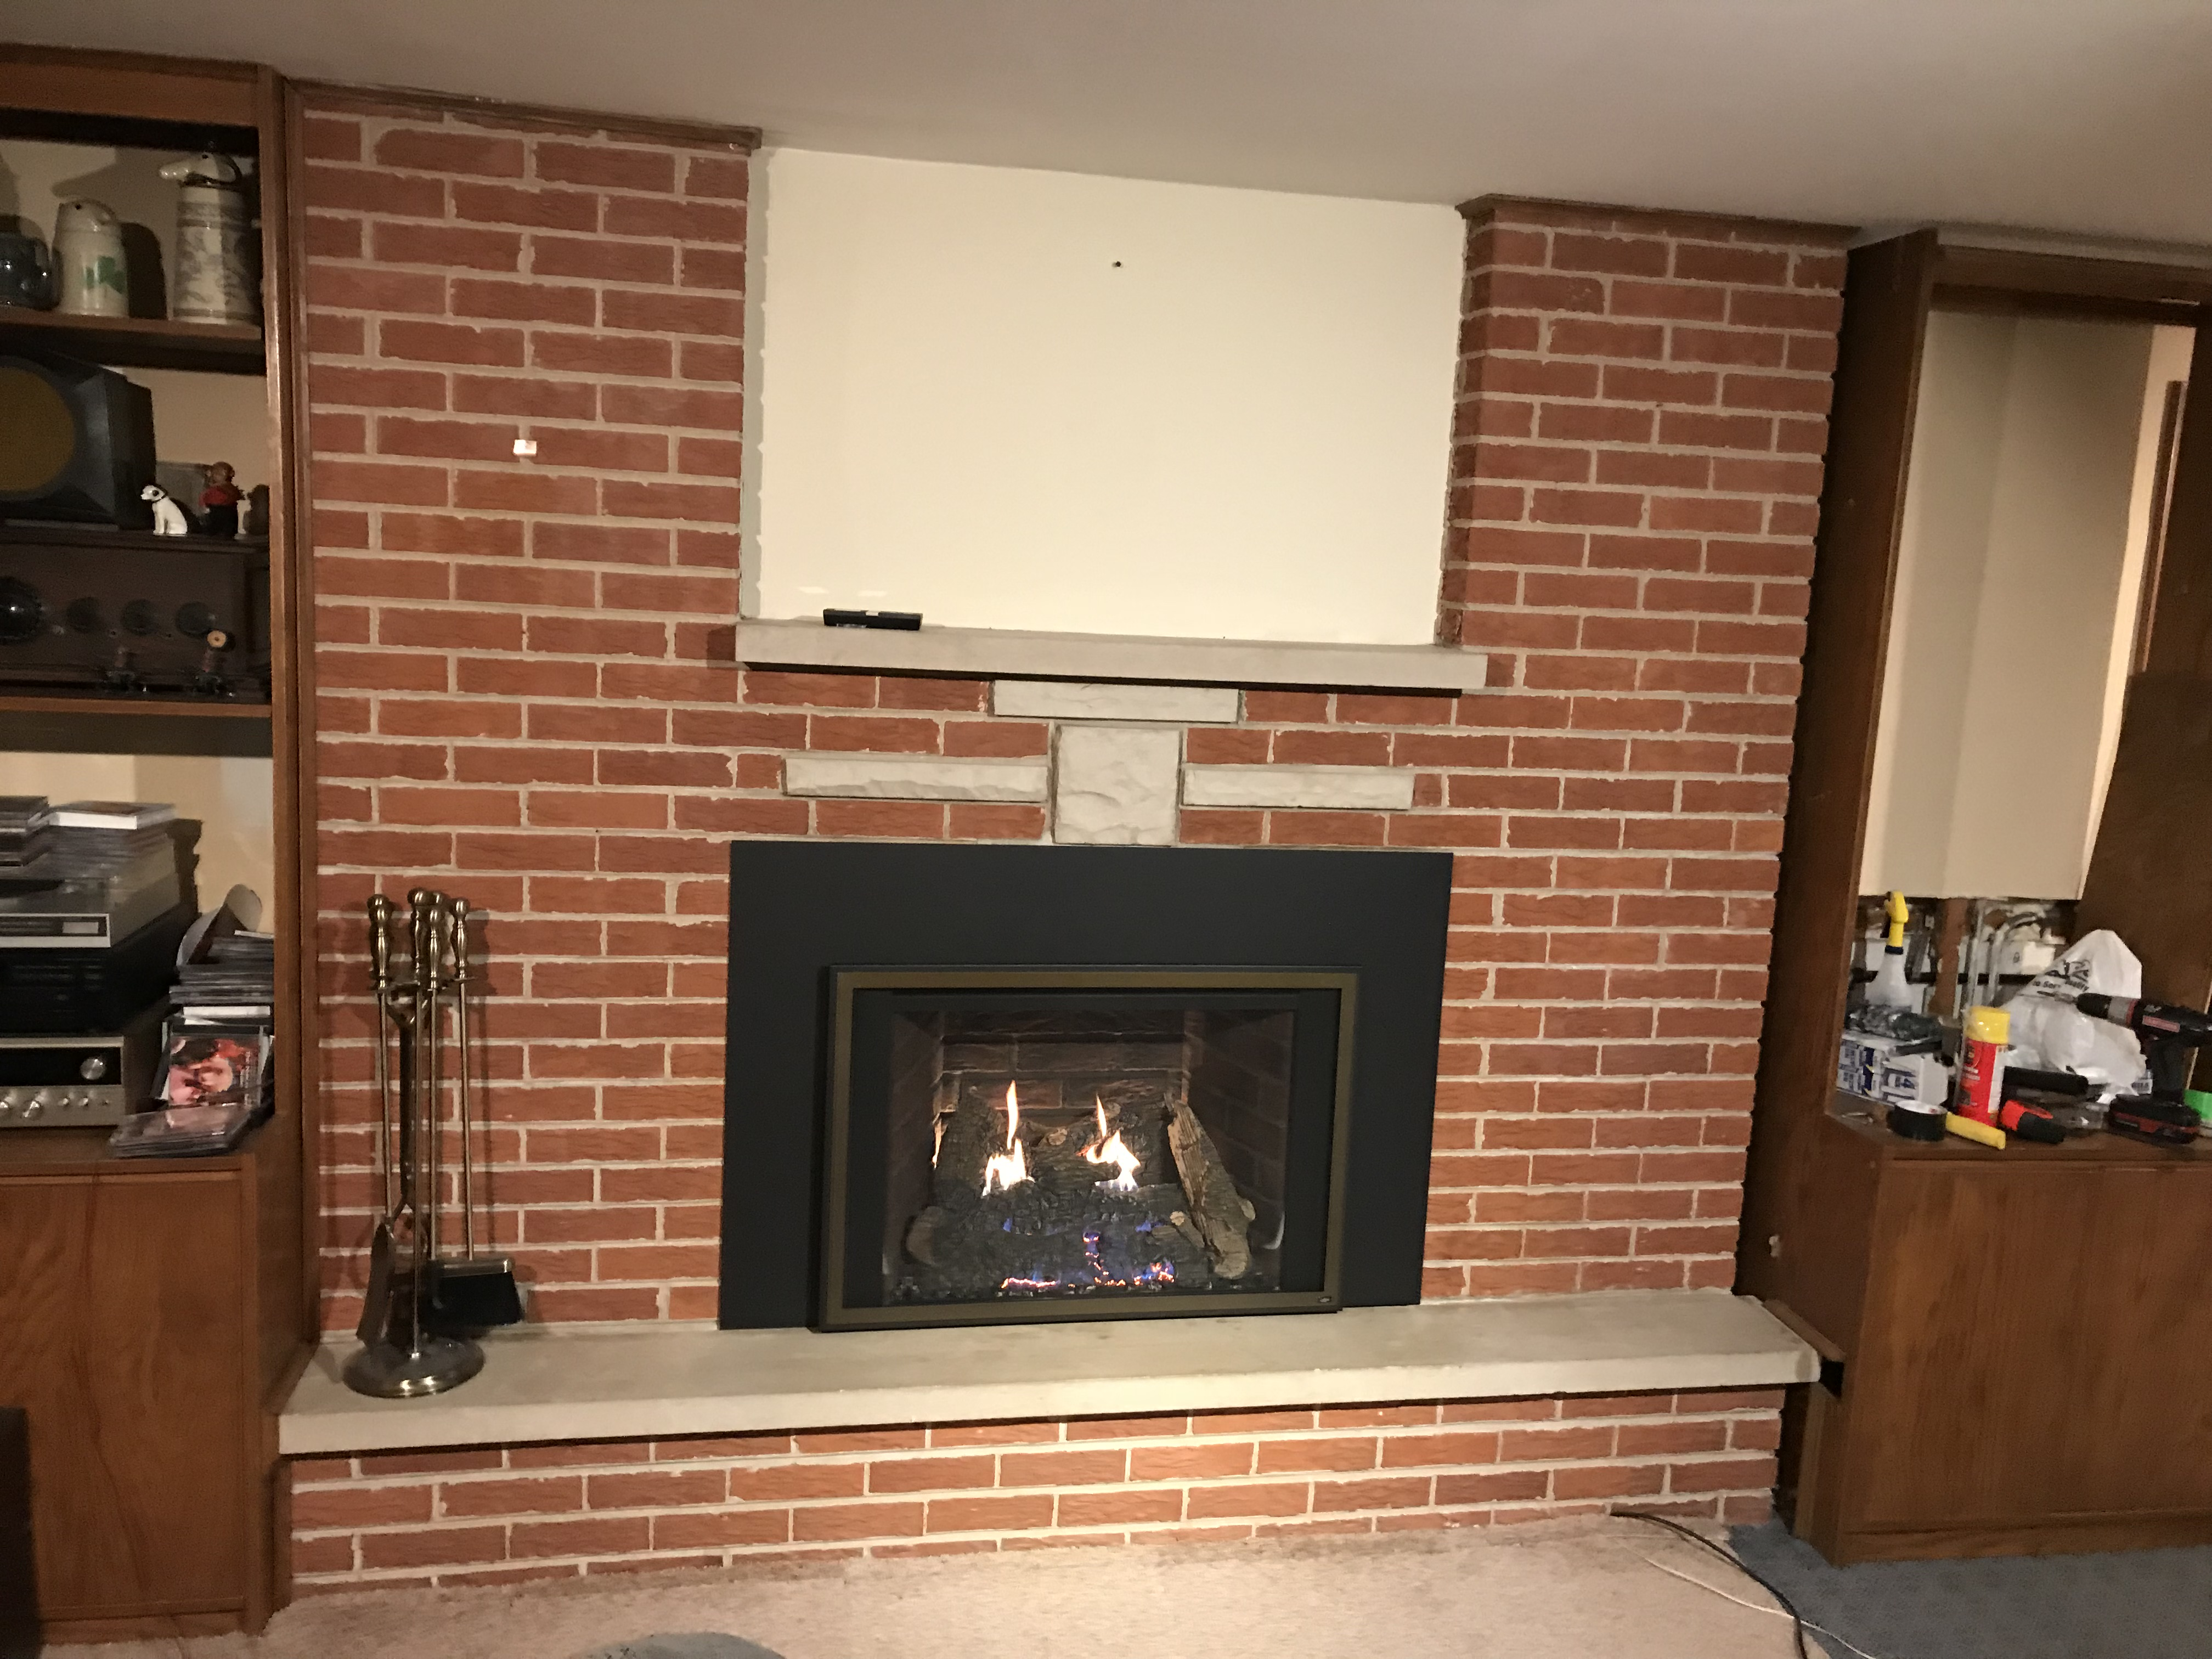 to in how sided single model install rettinger product solas much fireplaces vent direct built fireplace a